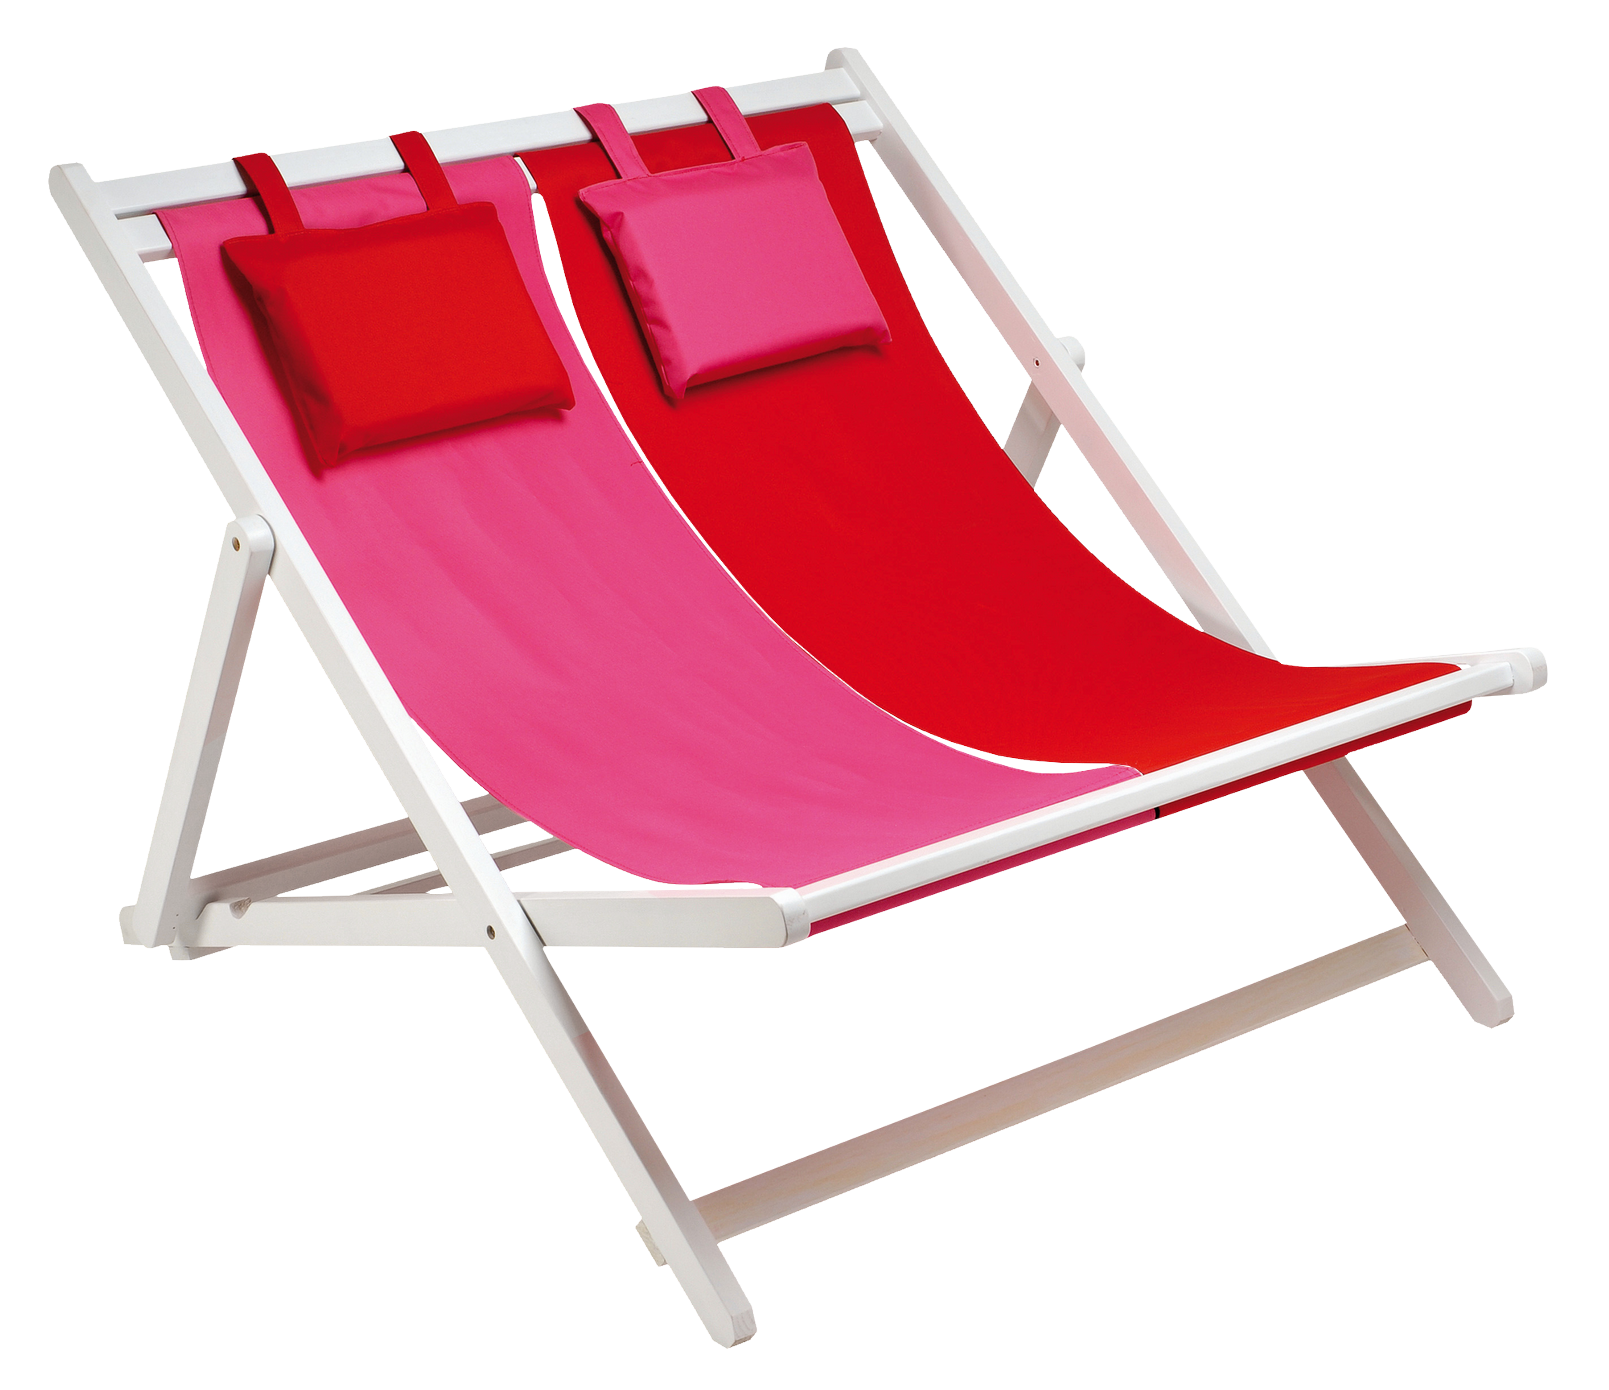 Transparent_Beach_Double_Lounge_Chair_Clipart.png?m=1432165518.